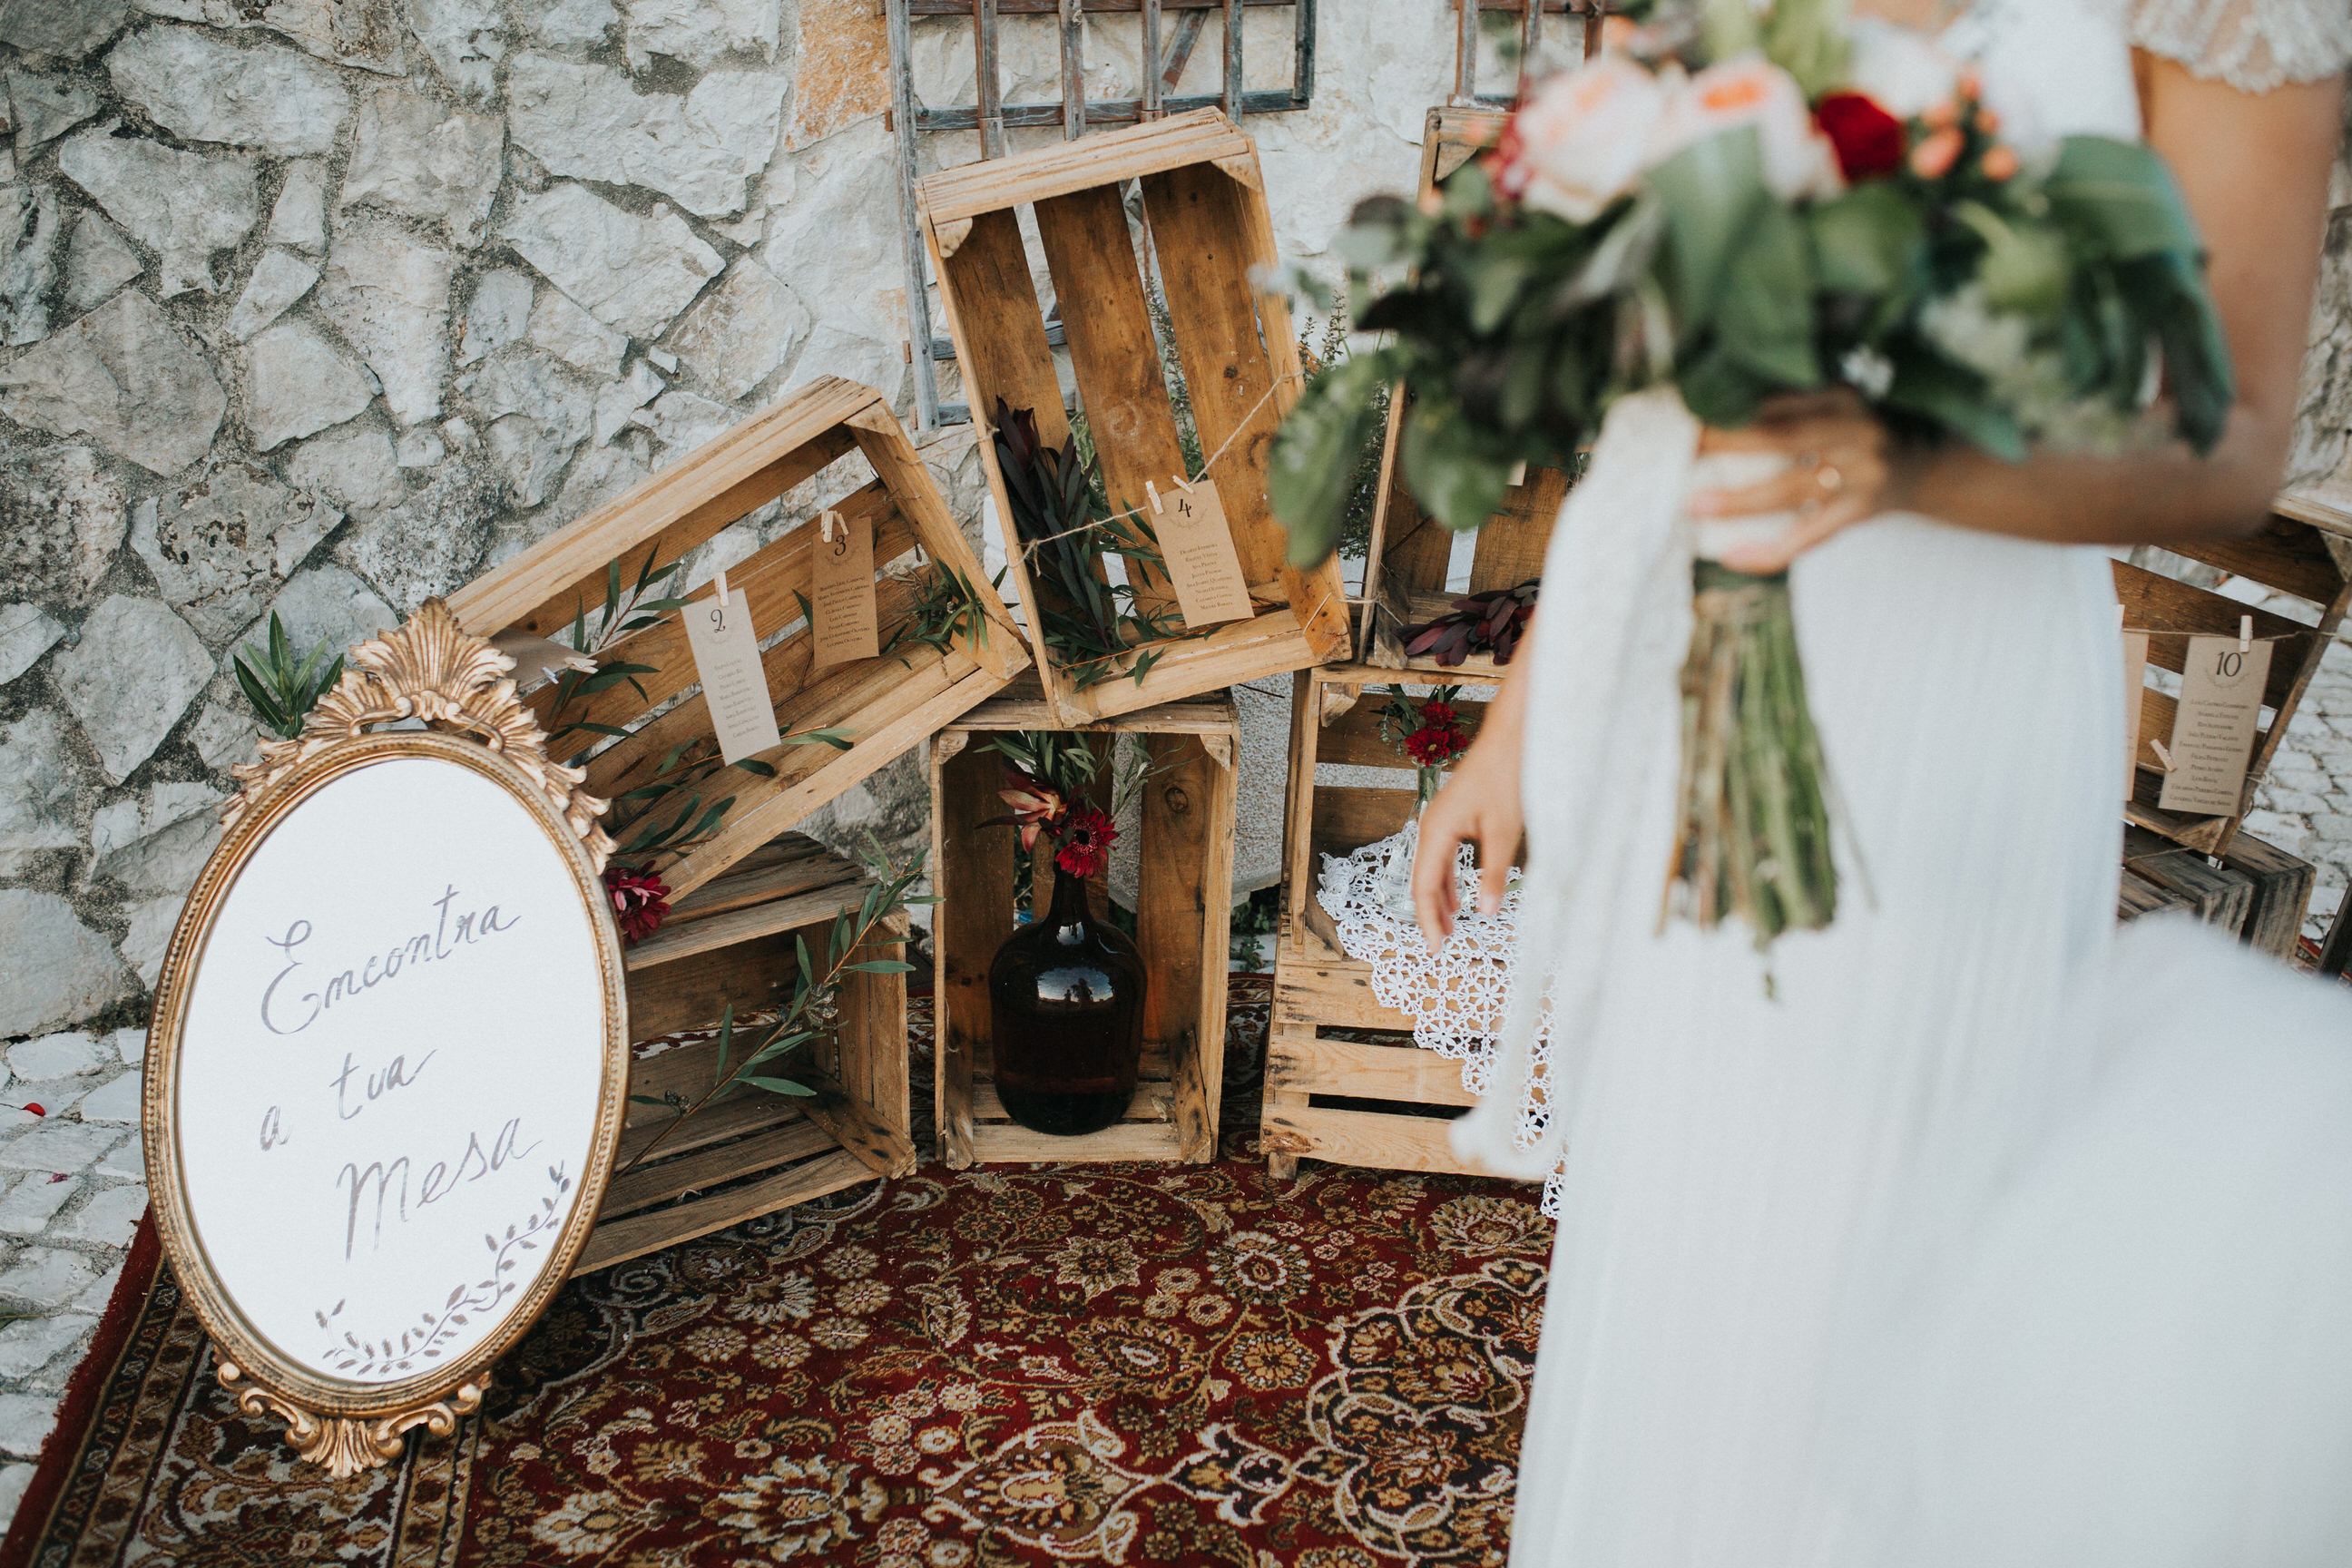 Casamento-Rustico-Bucelas-boho-chic-vestidos-dress-venue-Portugal-wedding-decor-cerimonia-quintas-perto-de-lisboa-recepcao-reception-seatting-plan